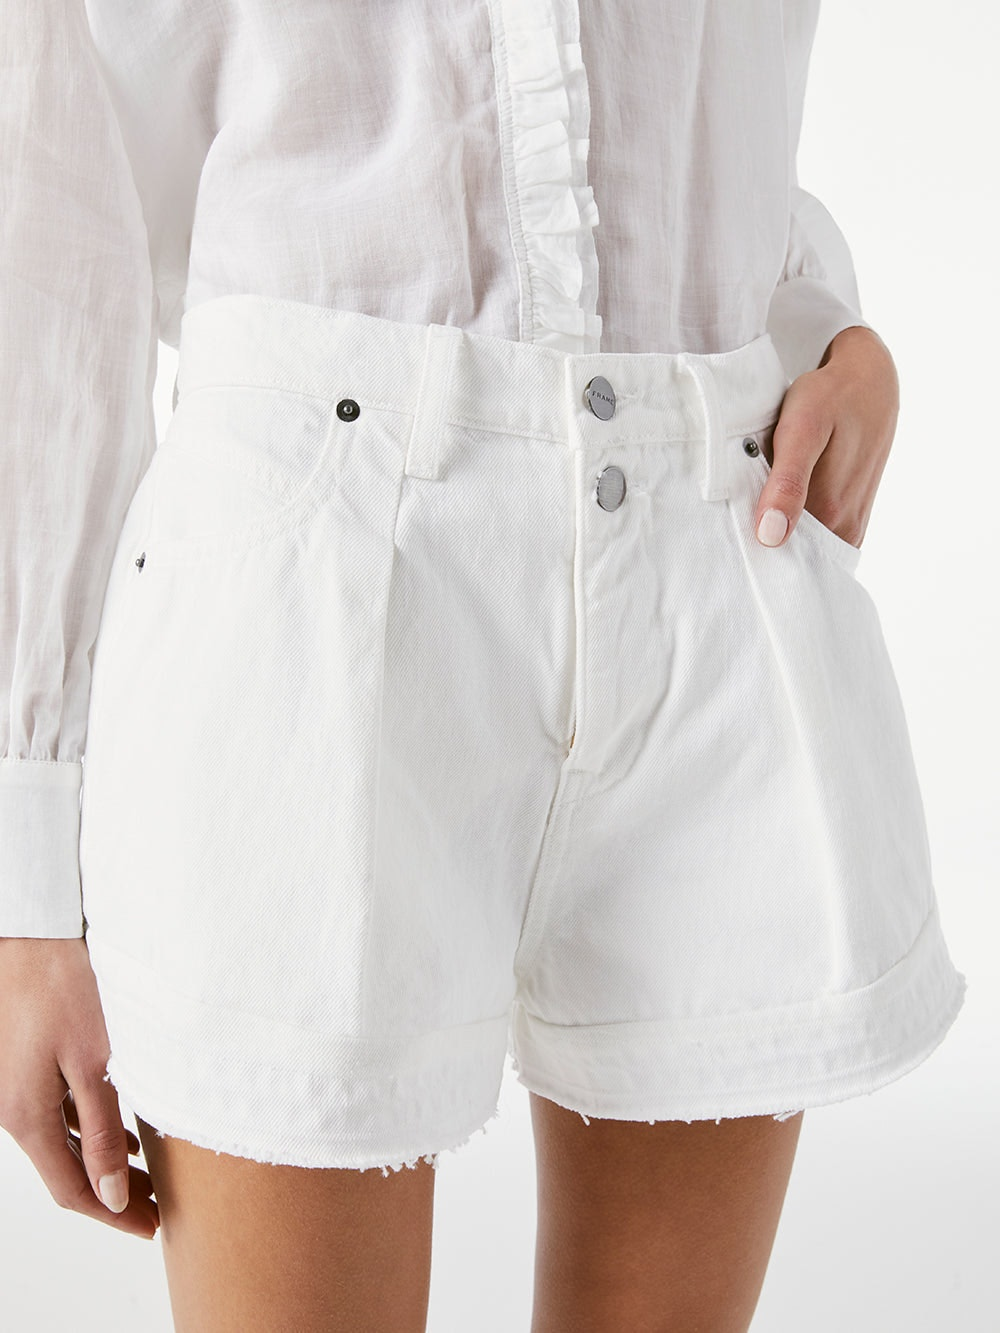 shorts front view alt:hover